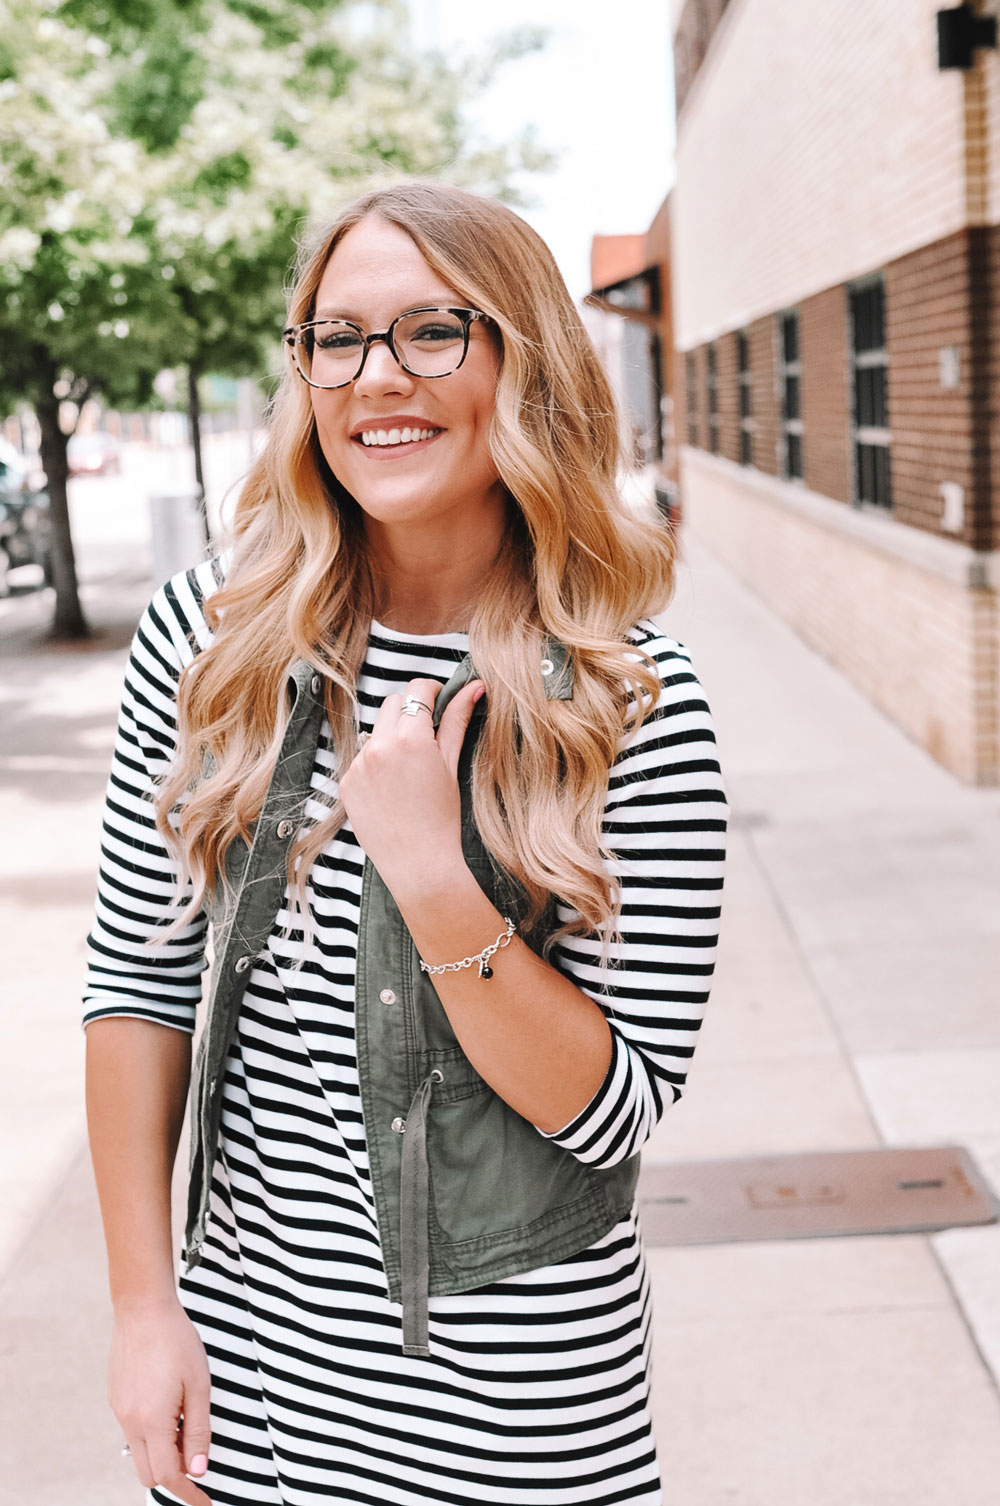 Amanda Martin of OKC blog Amanda's OK shares her life long love for James Avery jewelry